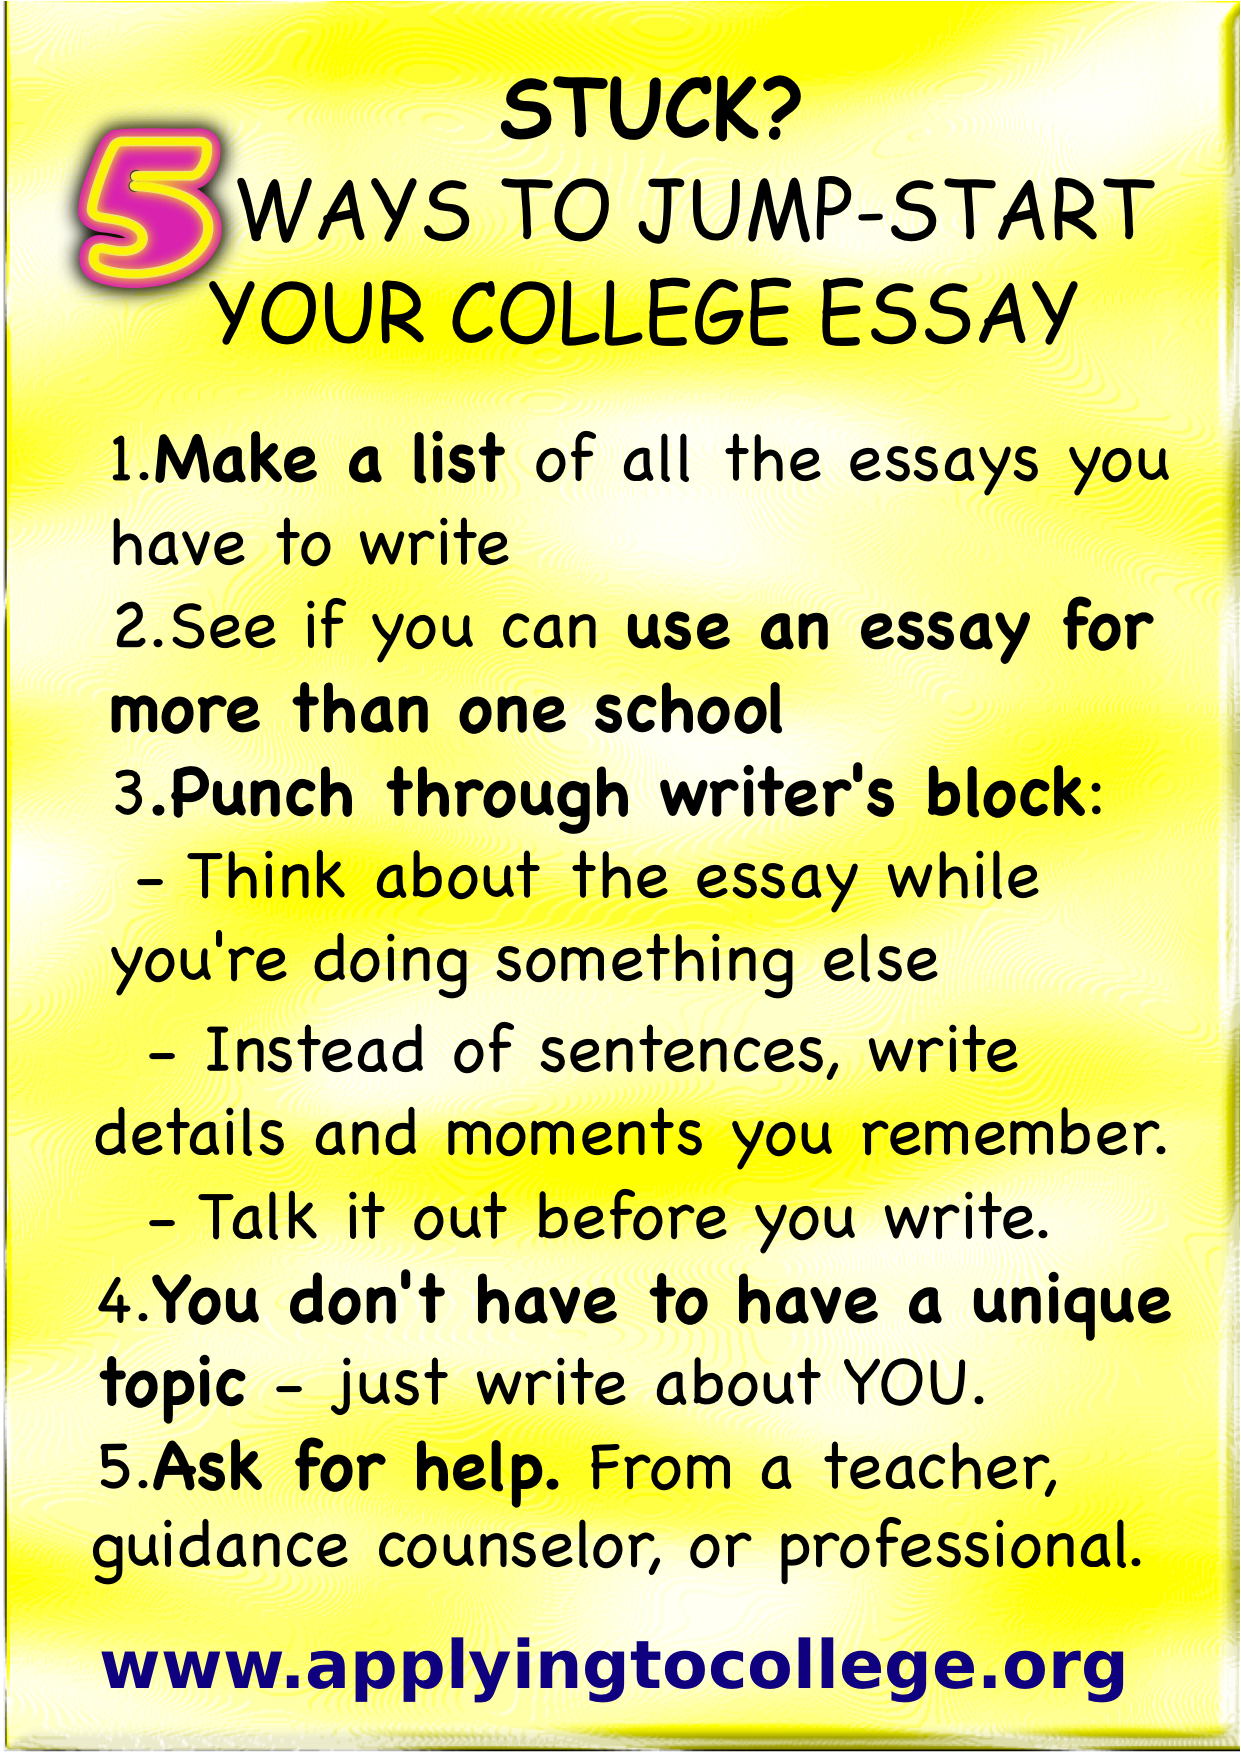 essay about myself for college college essays com college essay  college essays com college essay about breast cancer essays college essays com tips to jump start